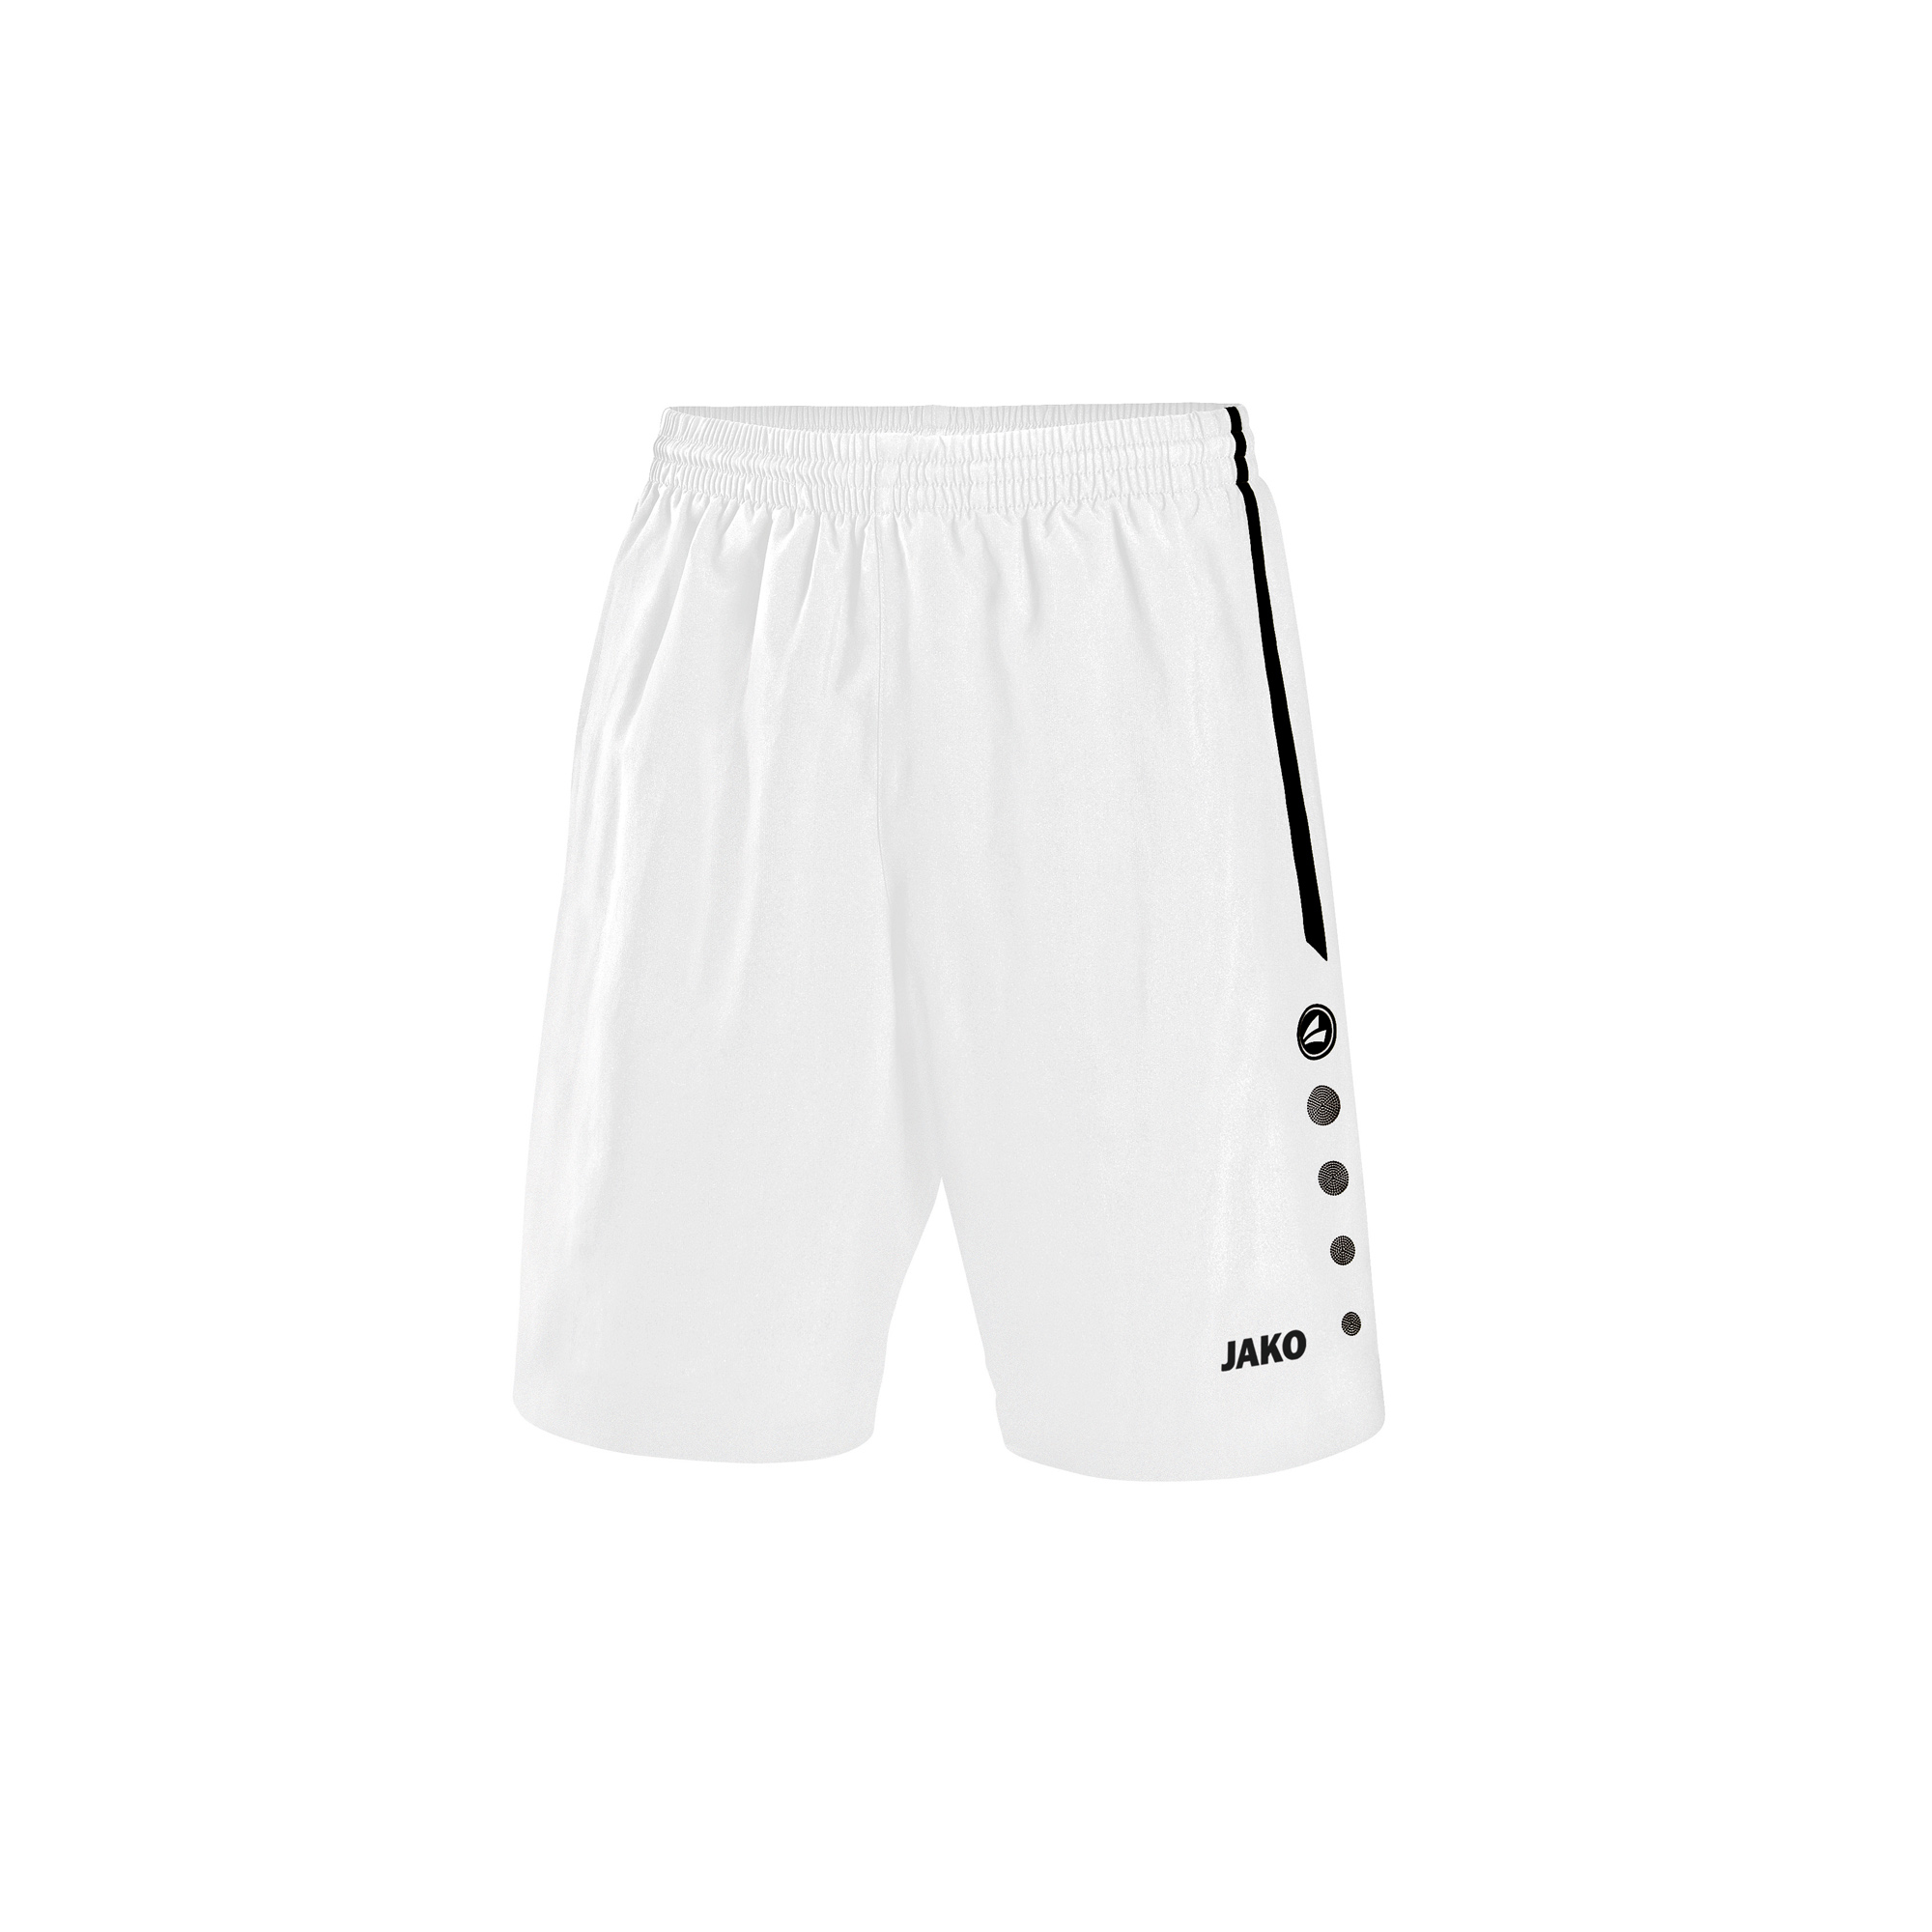 Jako Short Performance 6297-00 XXXXL